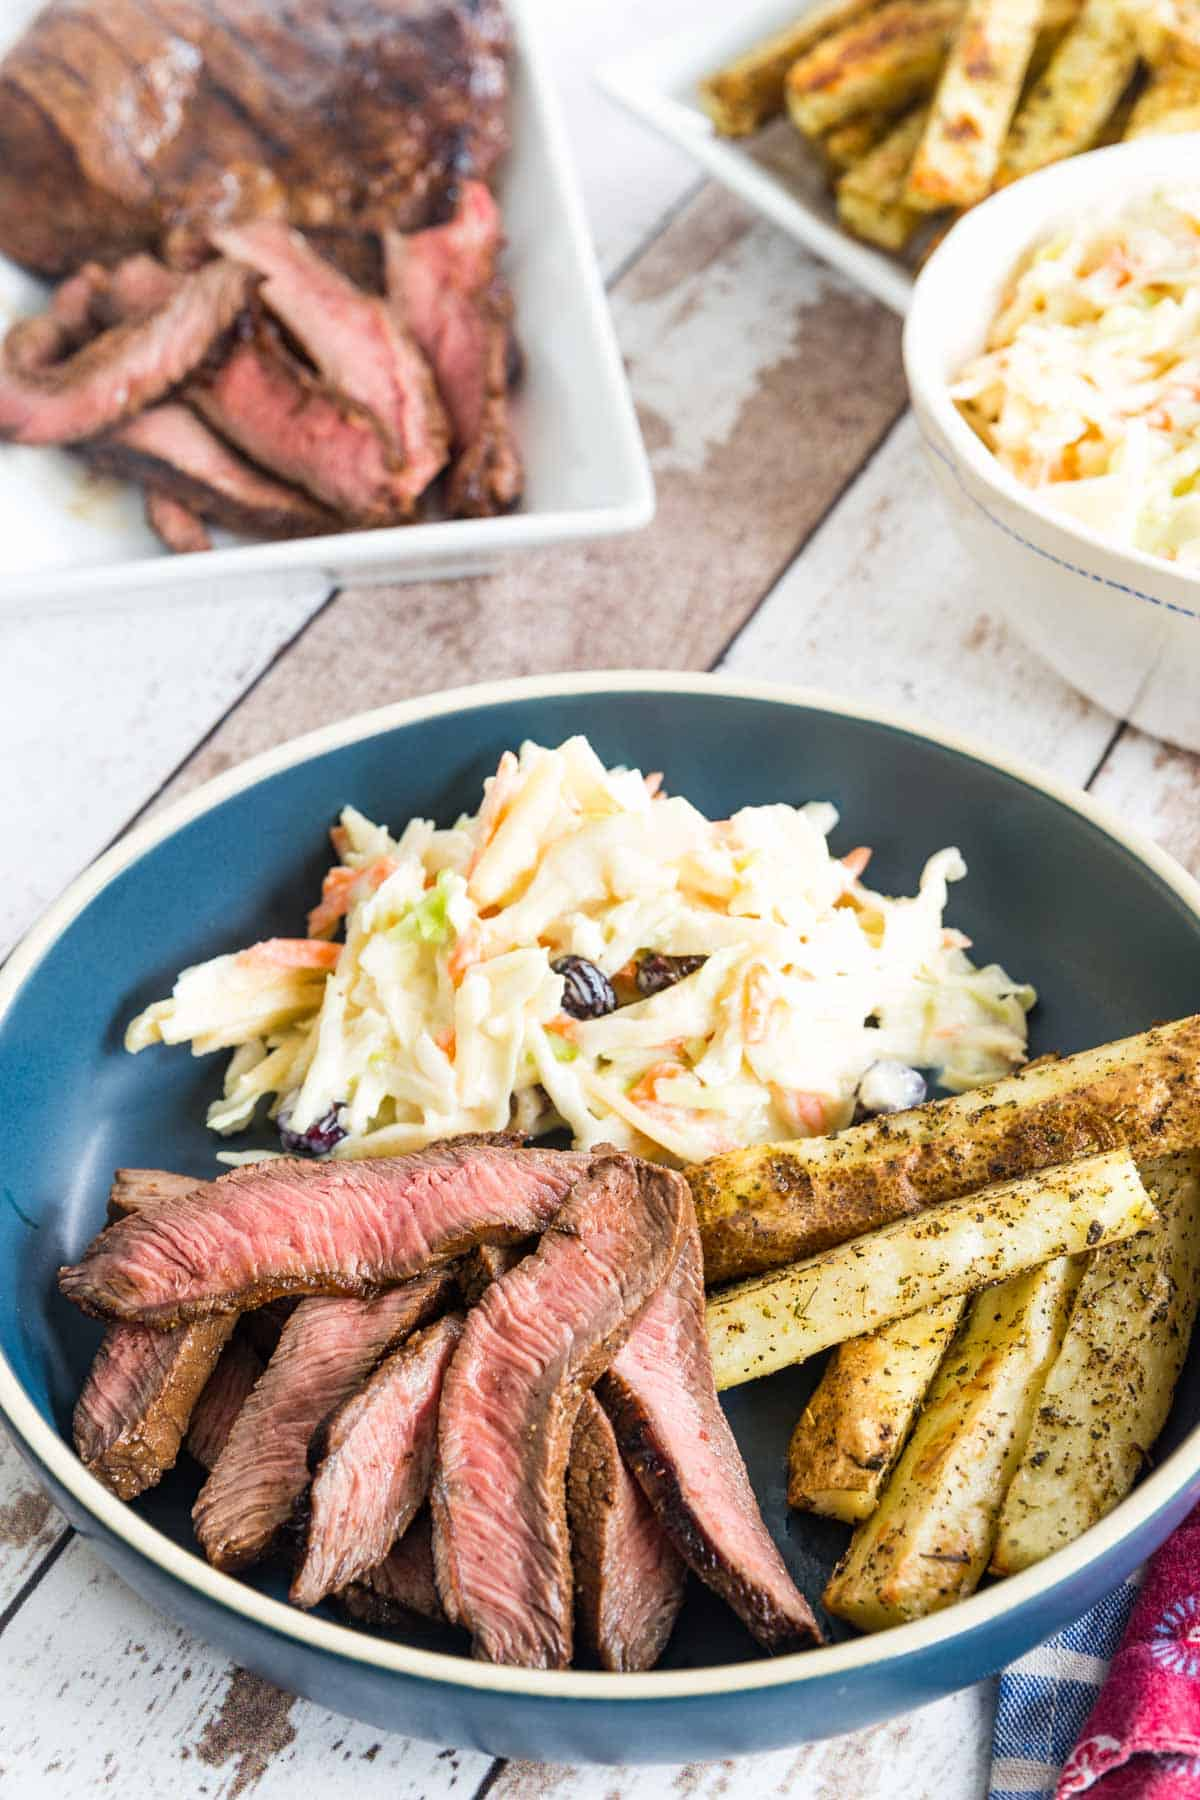 blue plate with sliced steak, baked french fries, and coleslaw